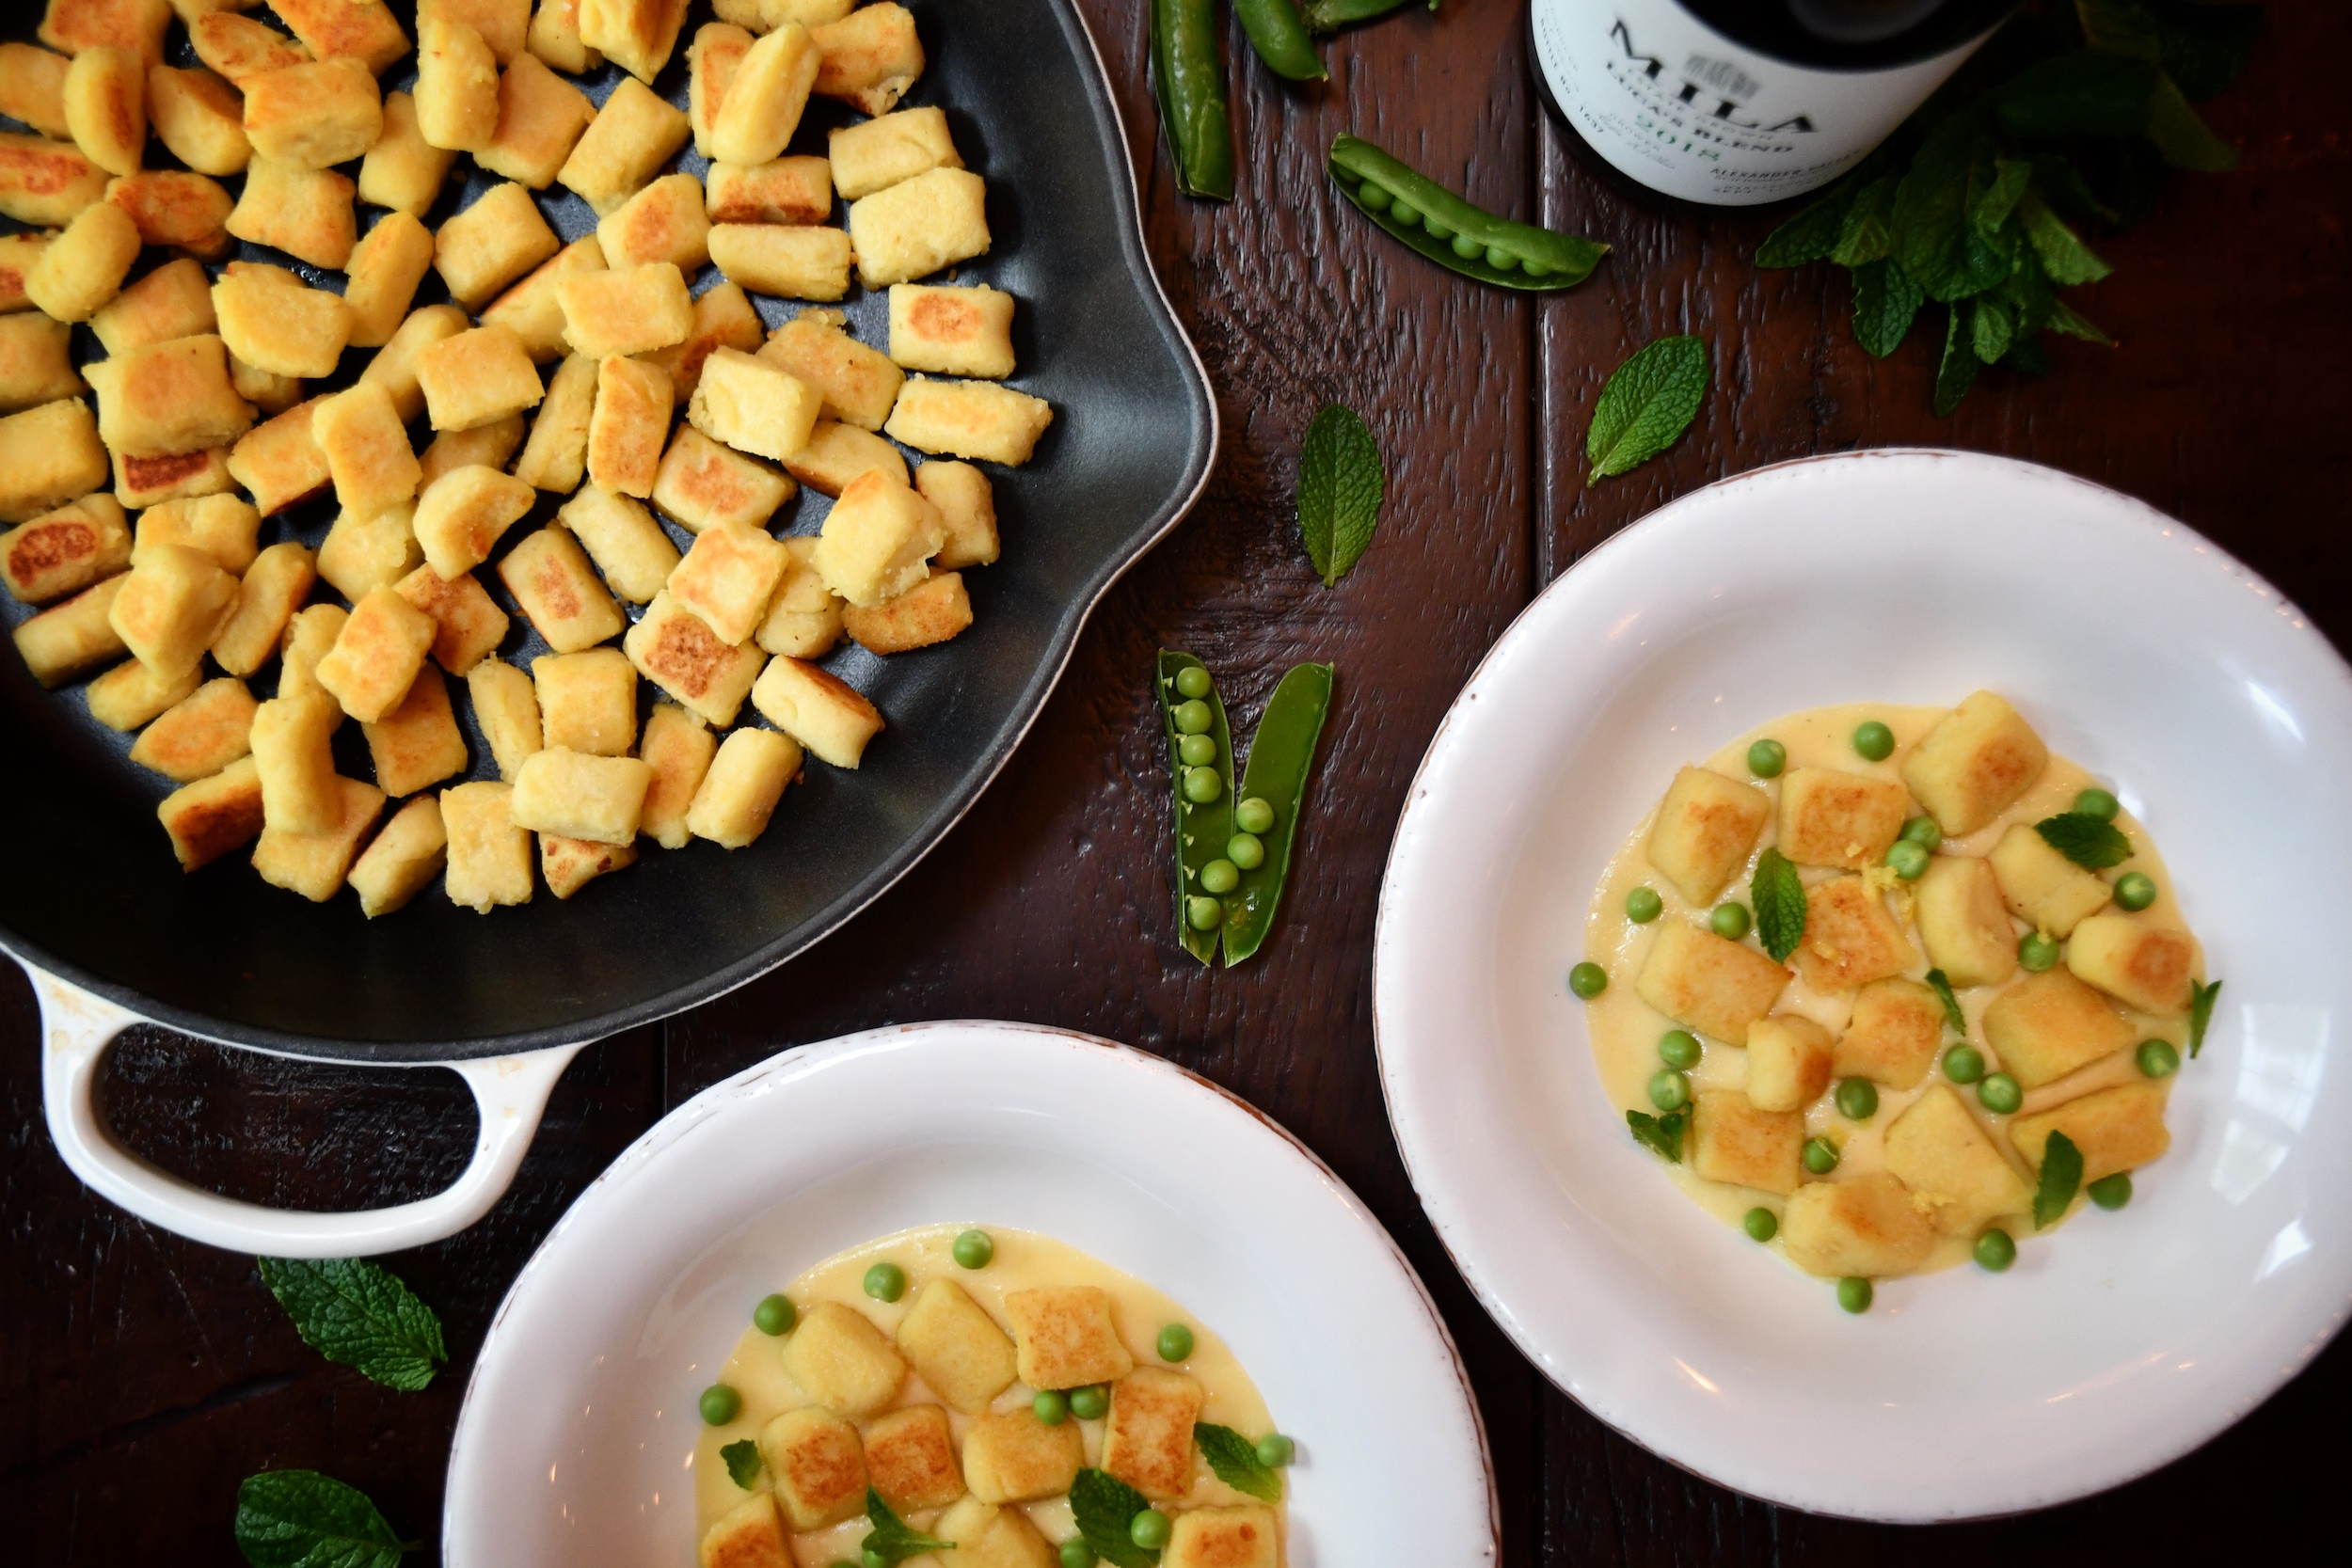 Gnocchi in pan and dishes